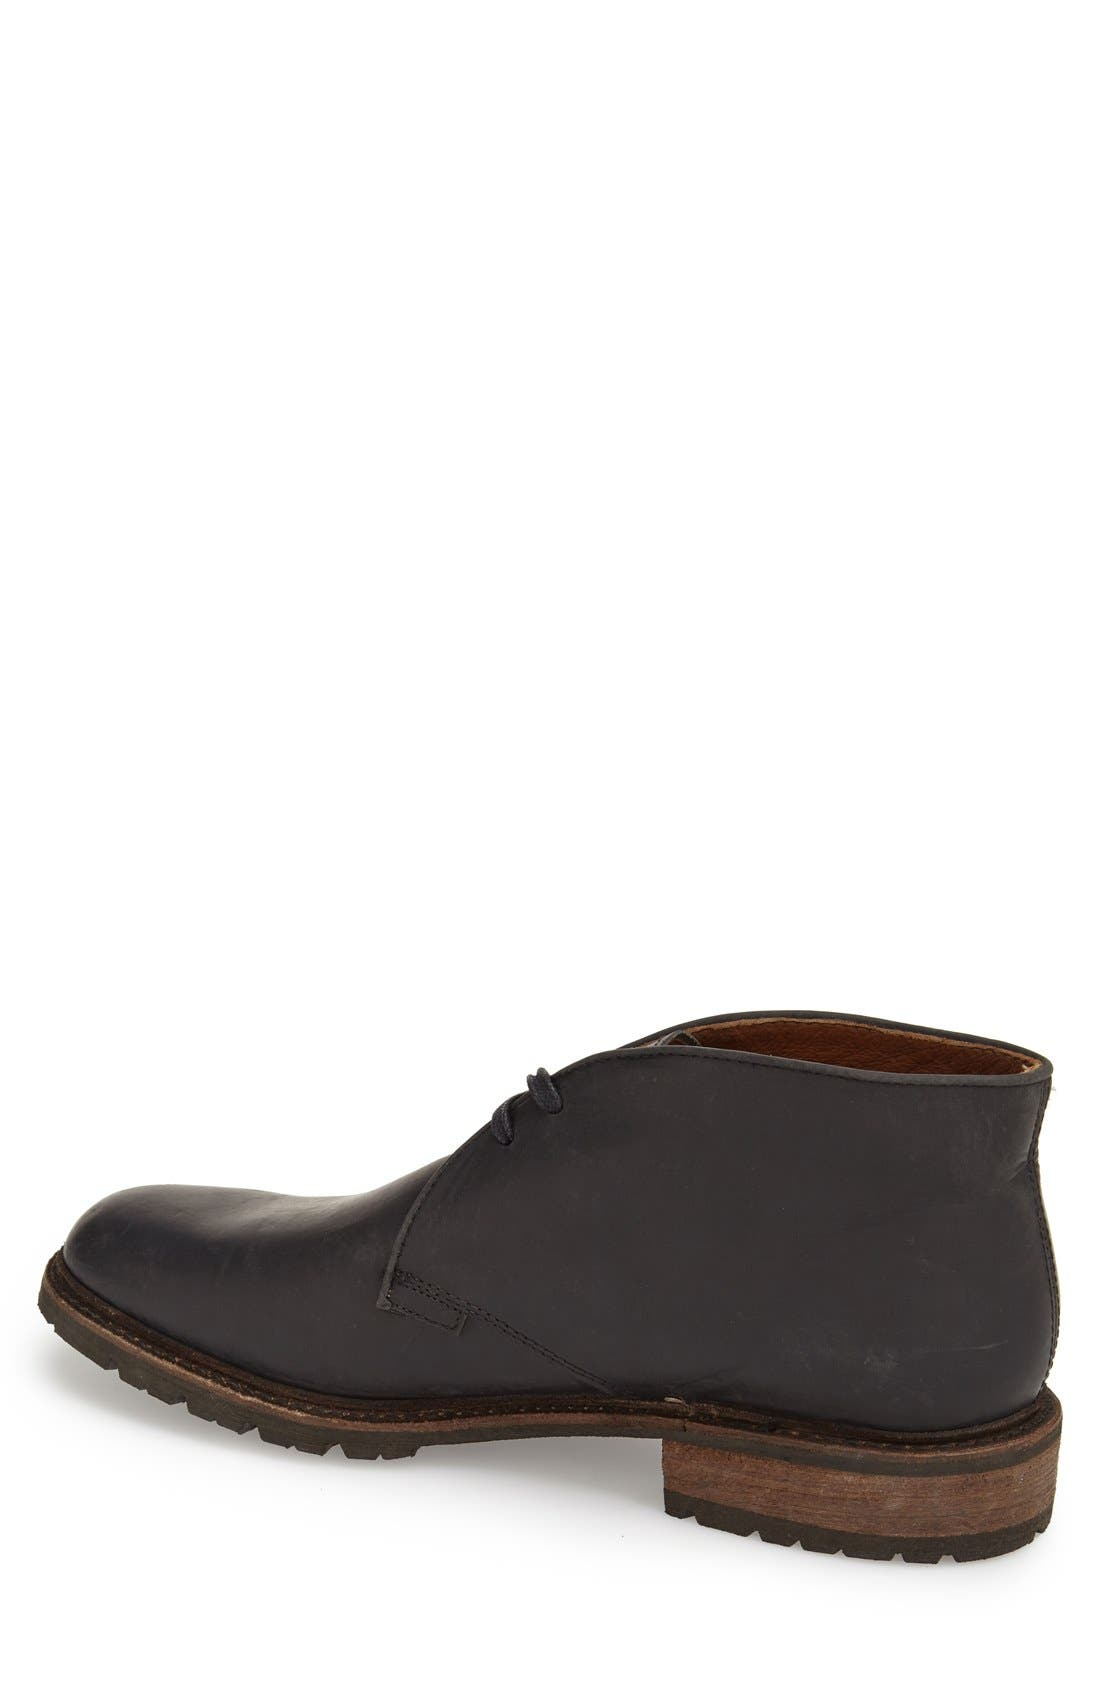 Alternate Image 2  - Frye 'James' Lug Sole Chukka Boot (Men)